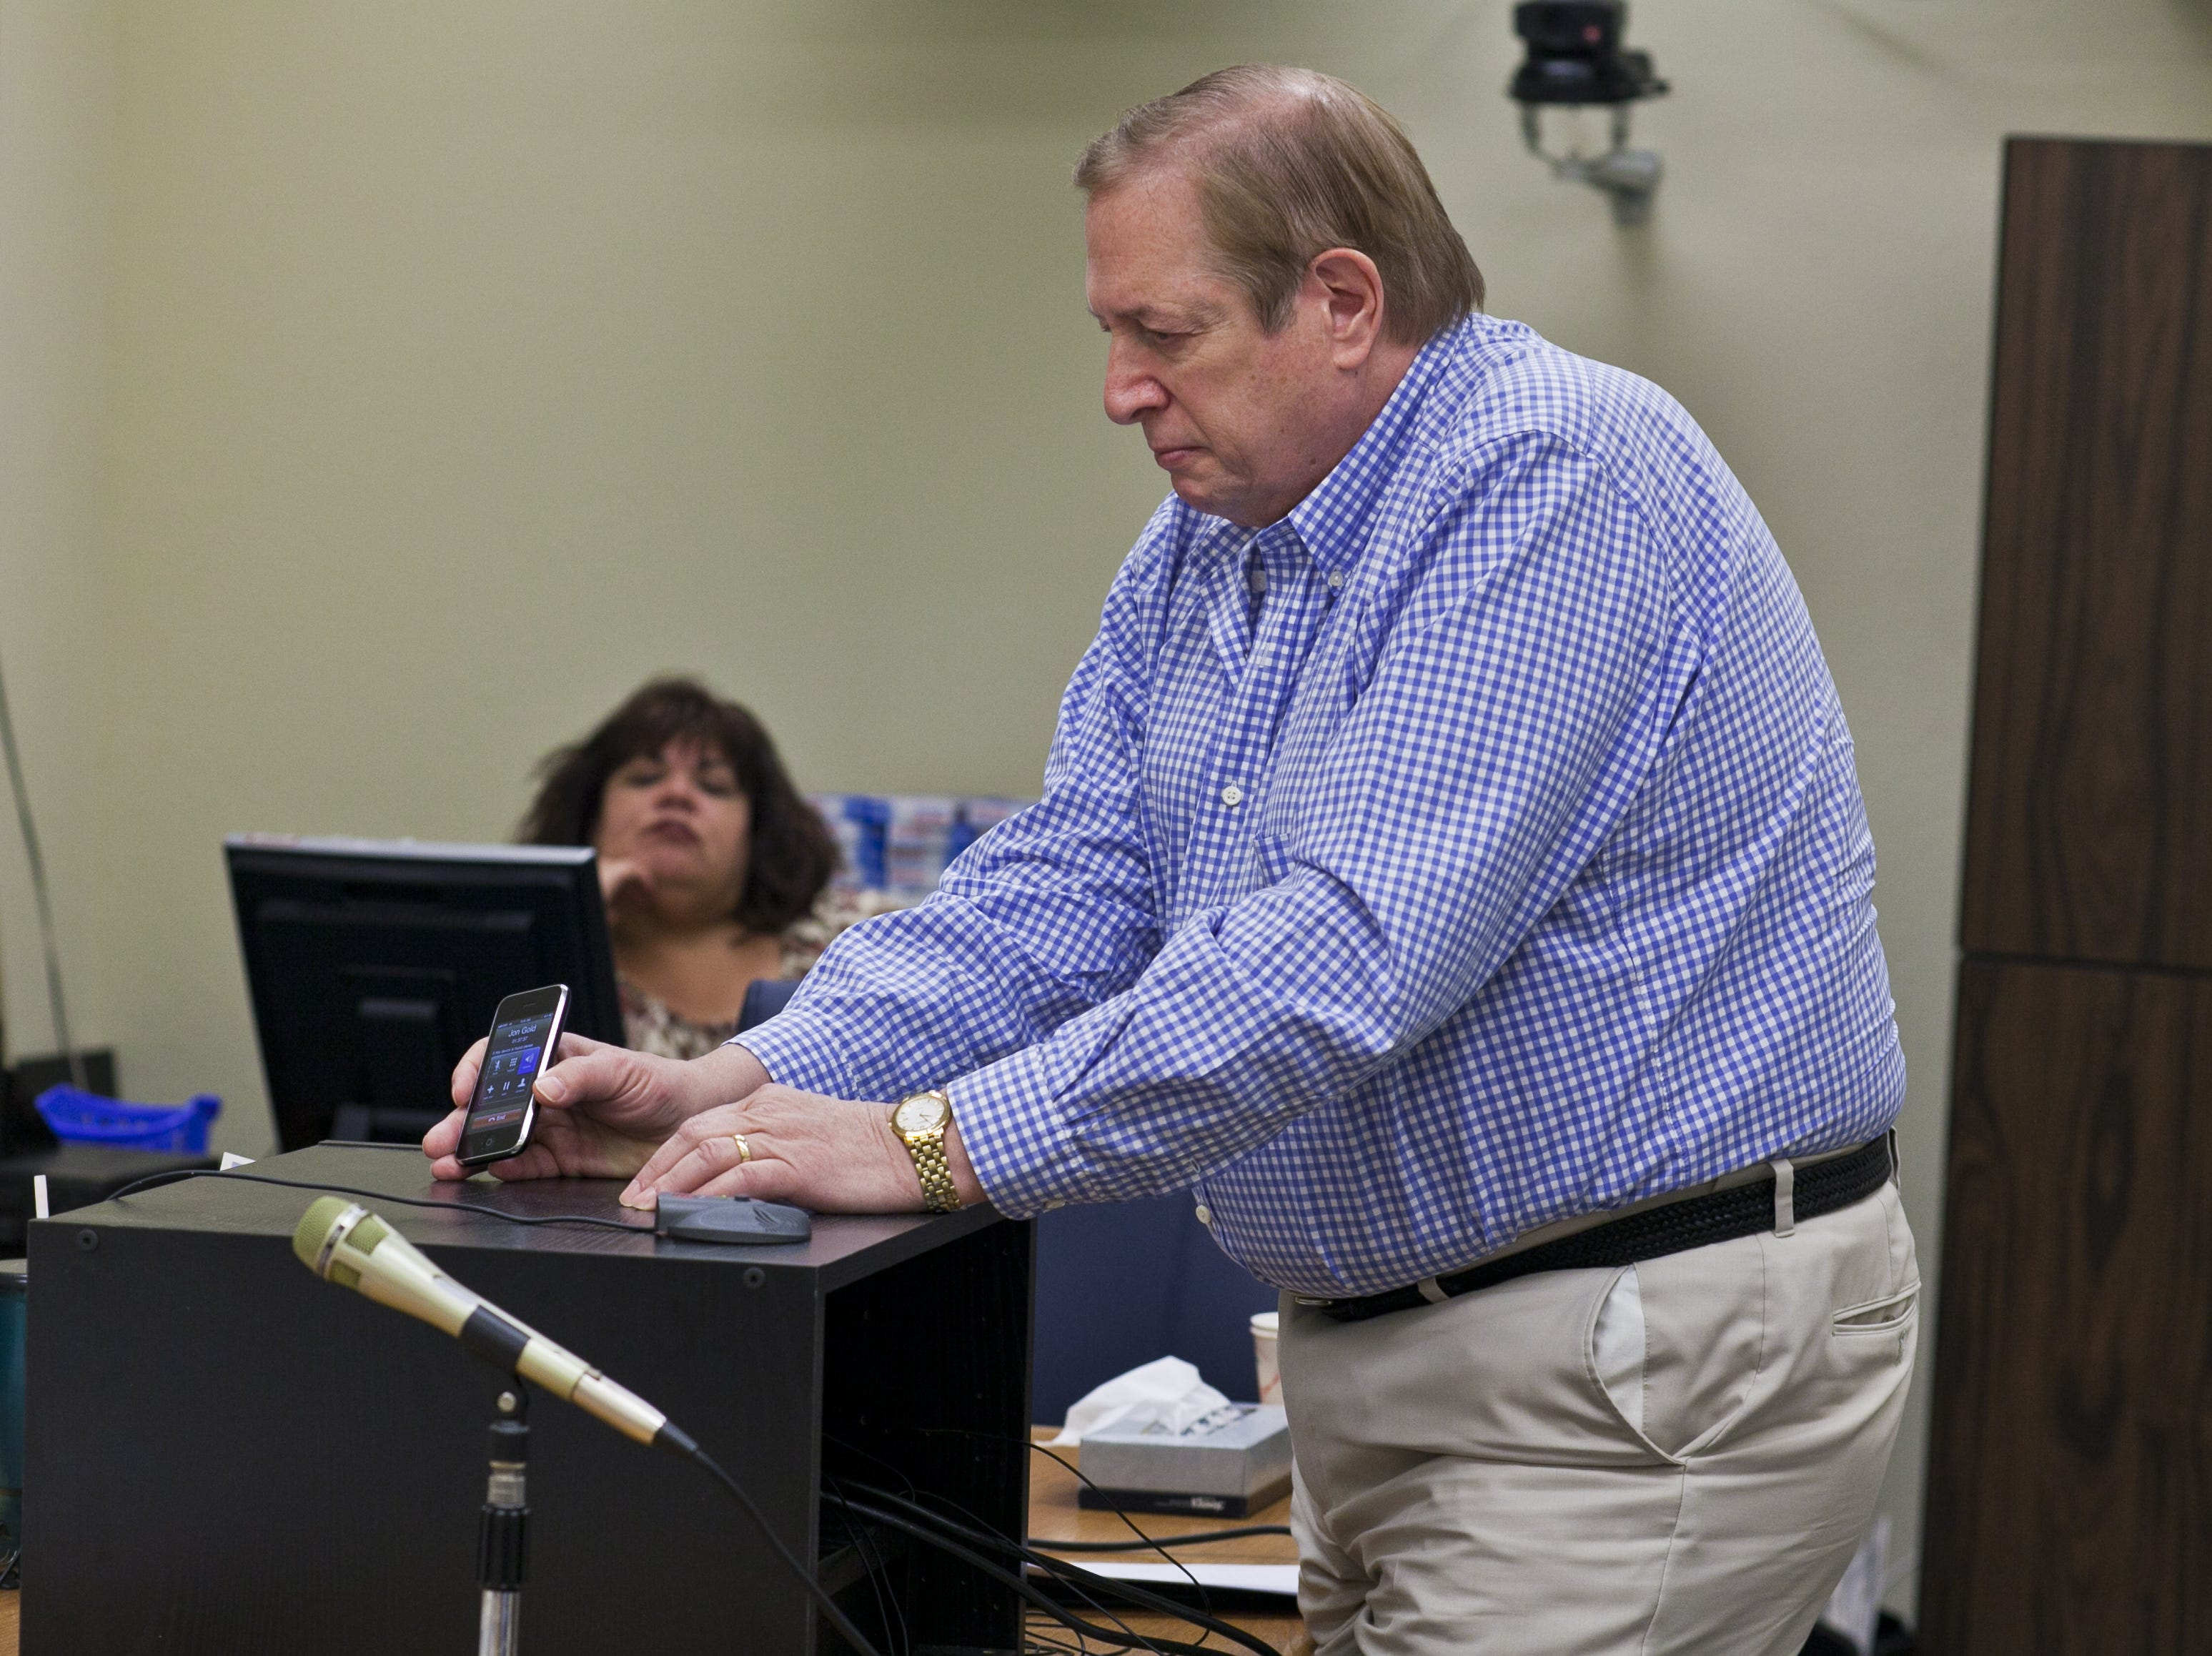 Sanford Kane, father of murder victim Eric Kane, holds up an iPhone so Jon Gold can speak against paroling Eric's killer, Jacob Wideman, at the Arizona Board of Executive Clemency (Parole Board) in May 2011 in Phoenix.